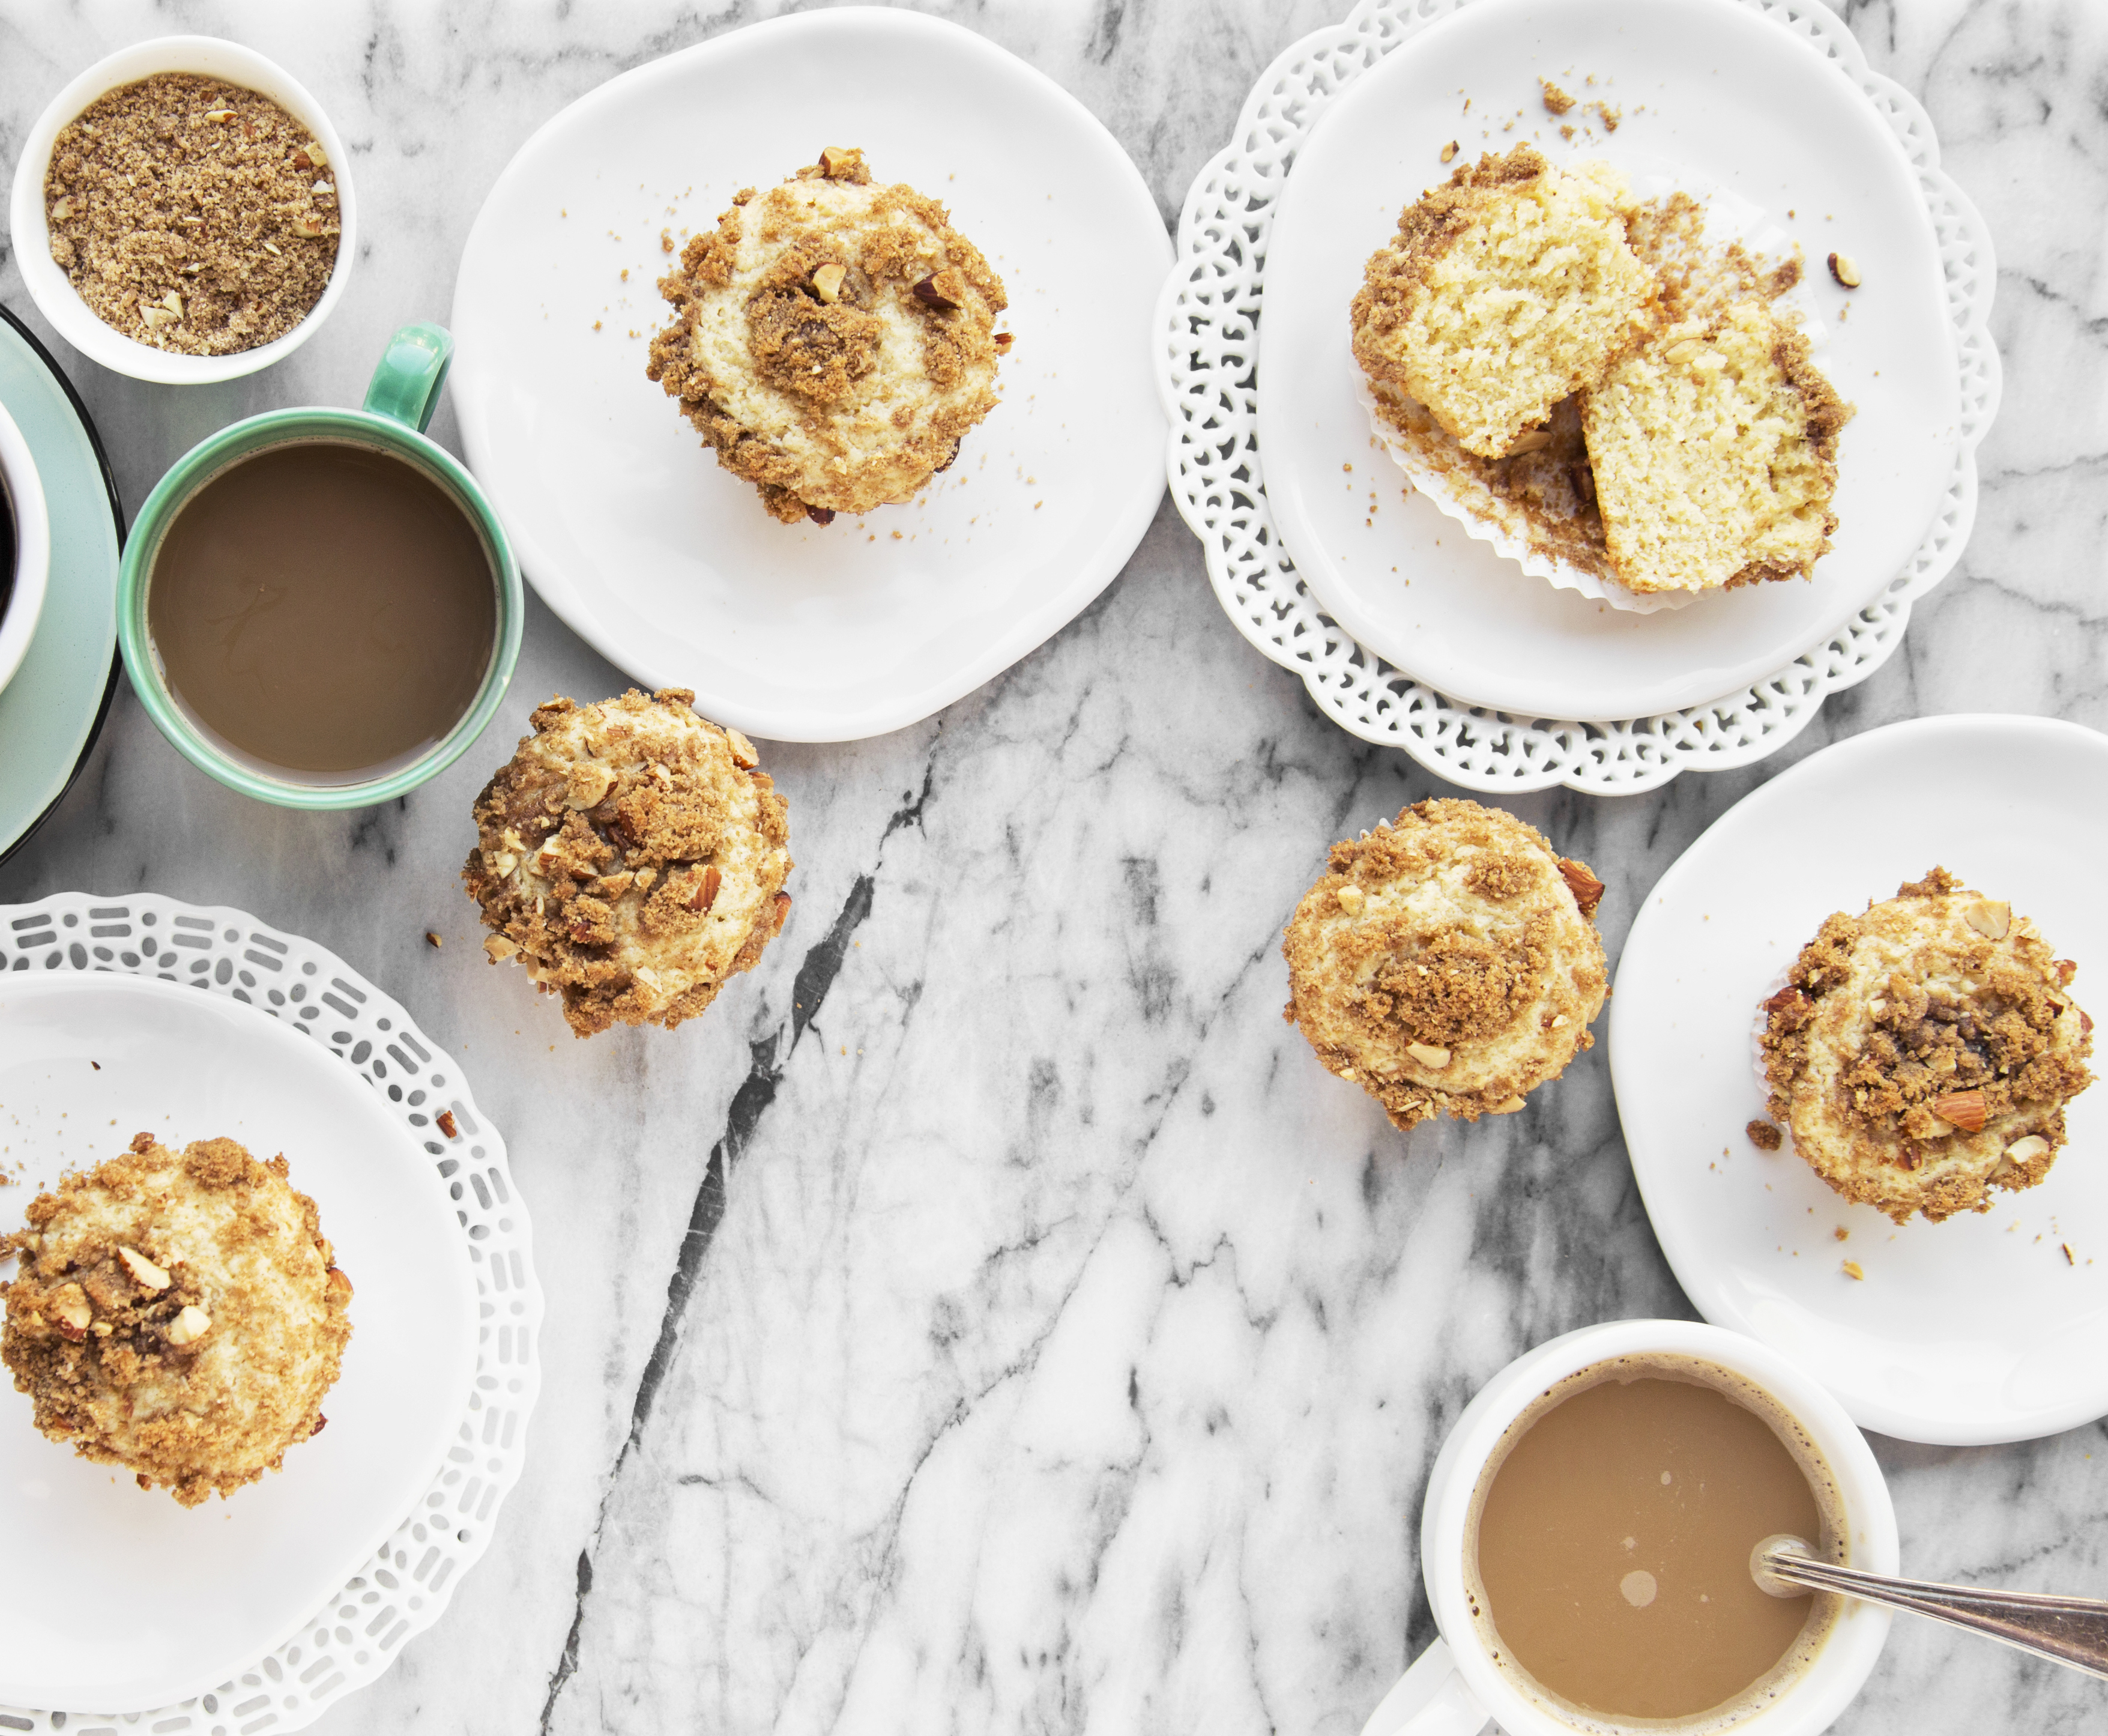 Can Cake Flour Be Substituted For All Purpose